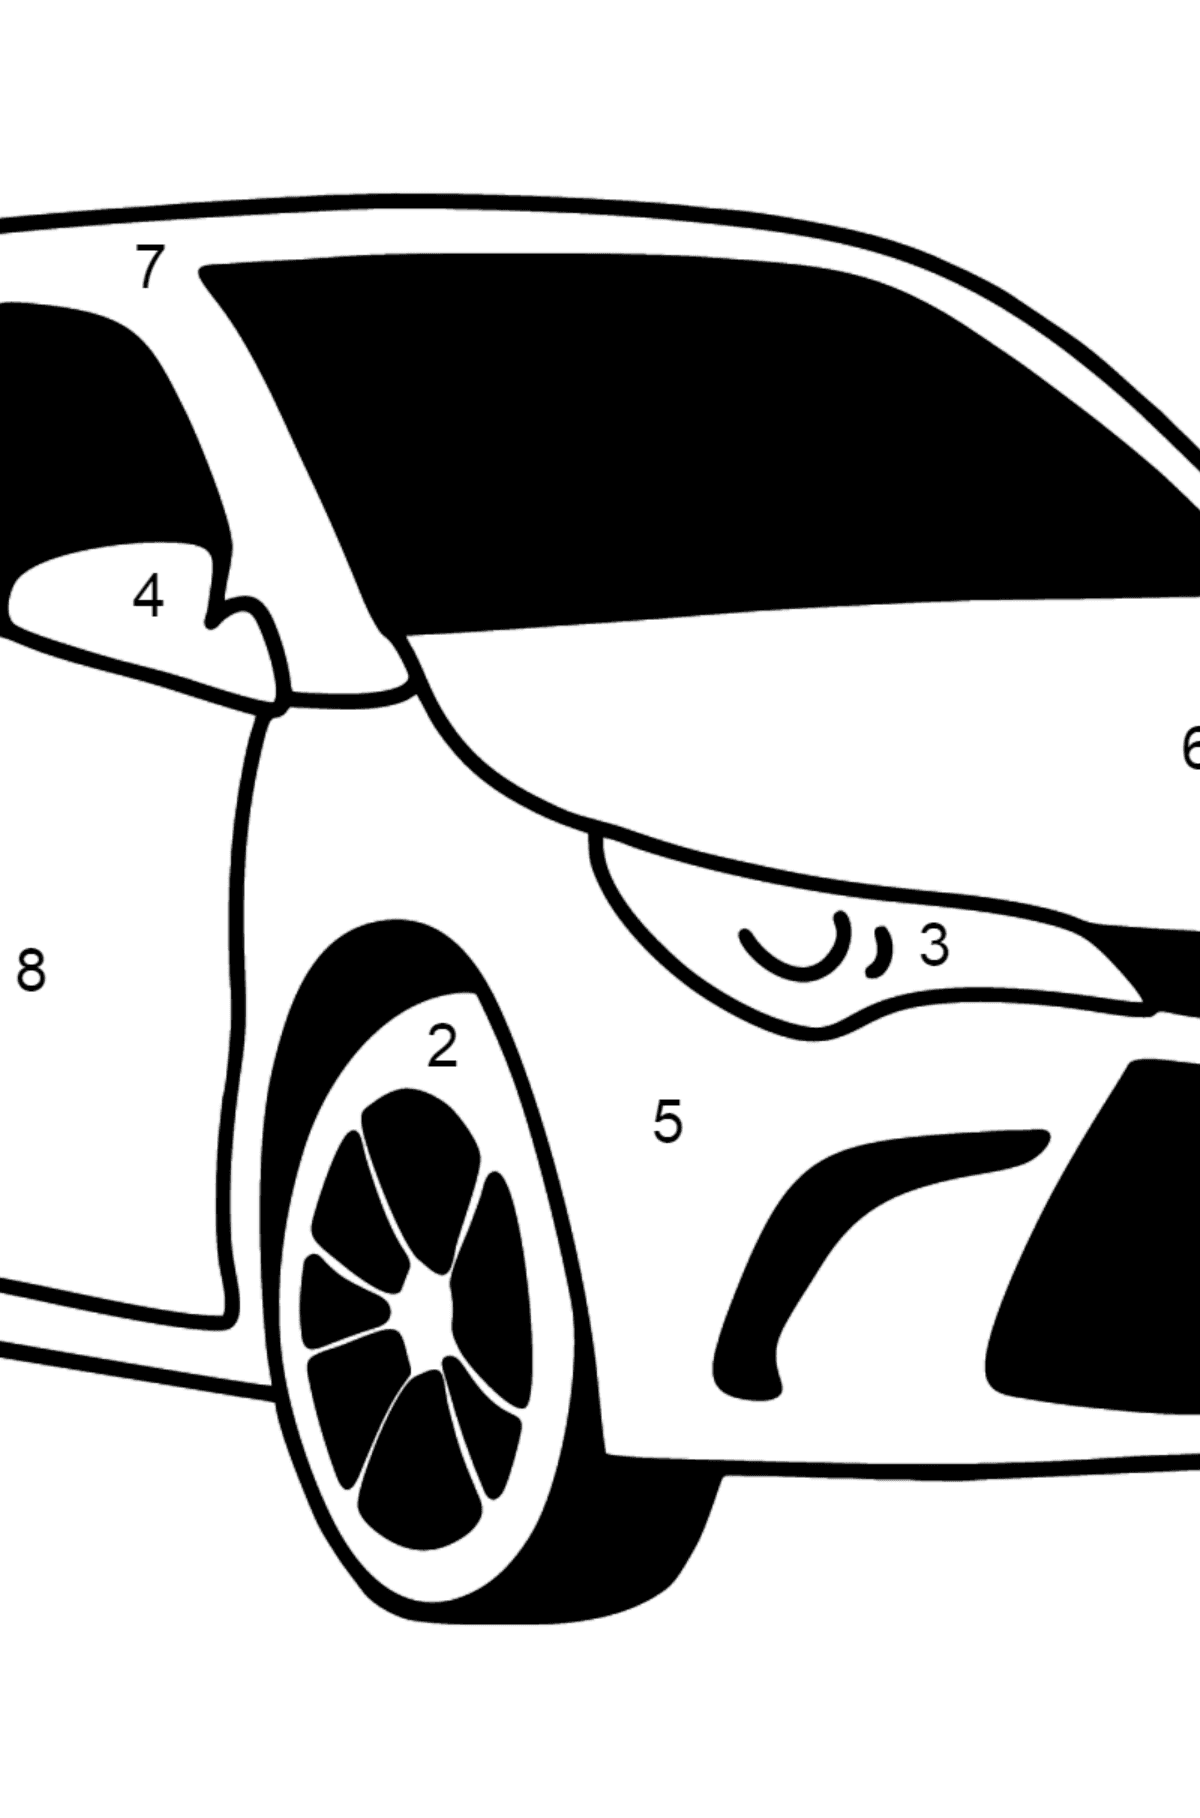 Toyota Camry coloring page - Coloring by Numbers for Kids